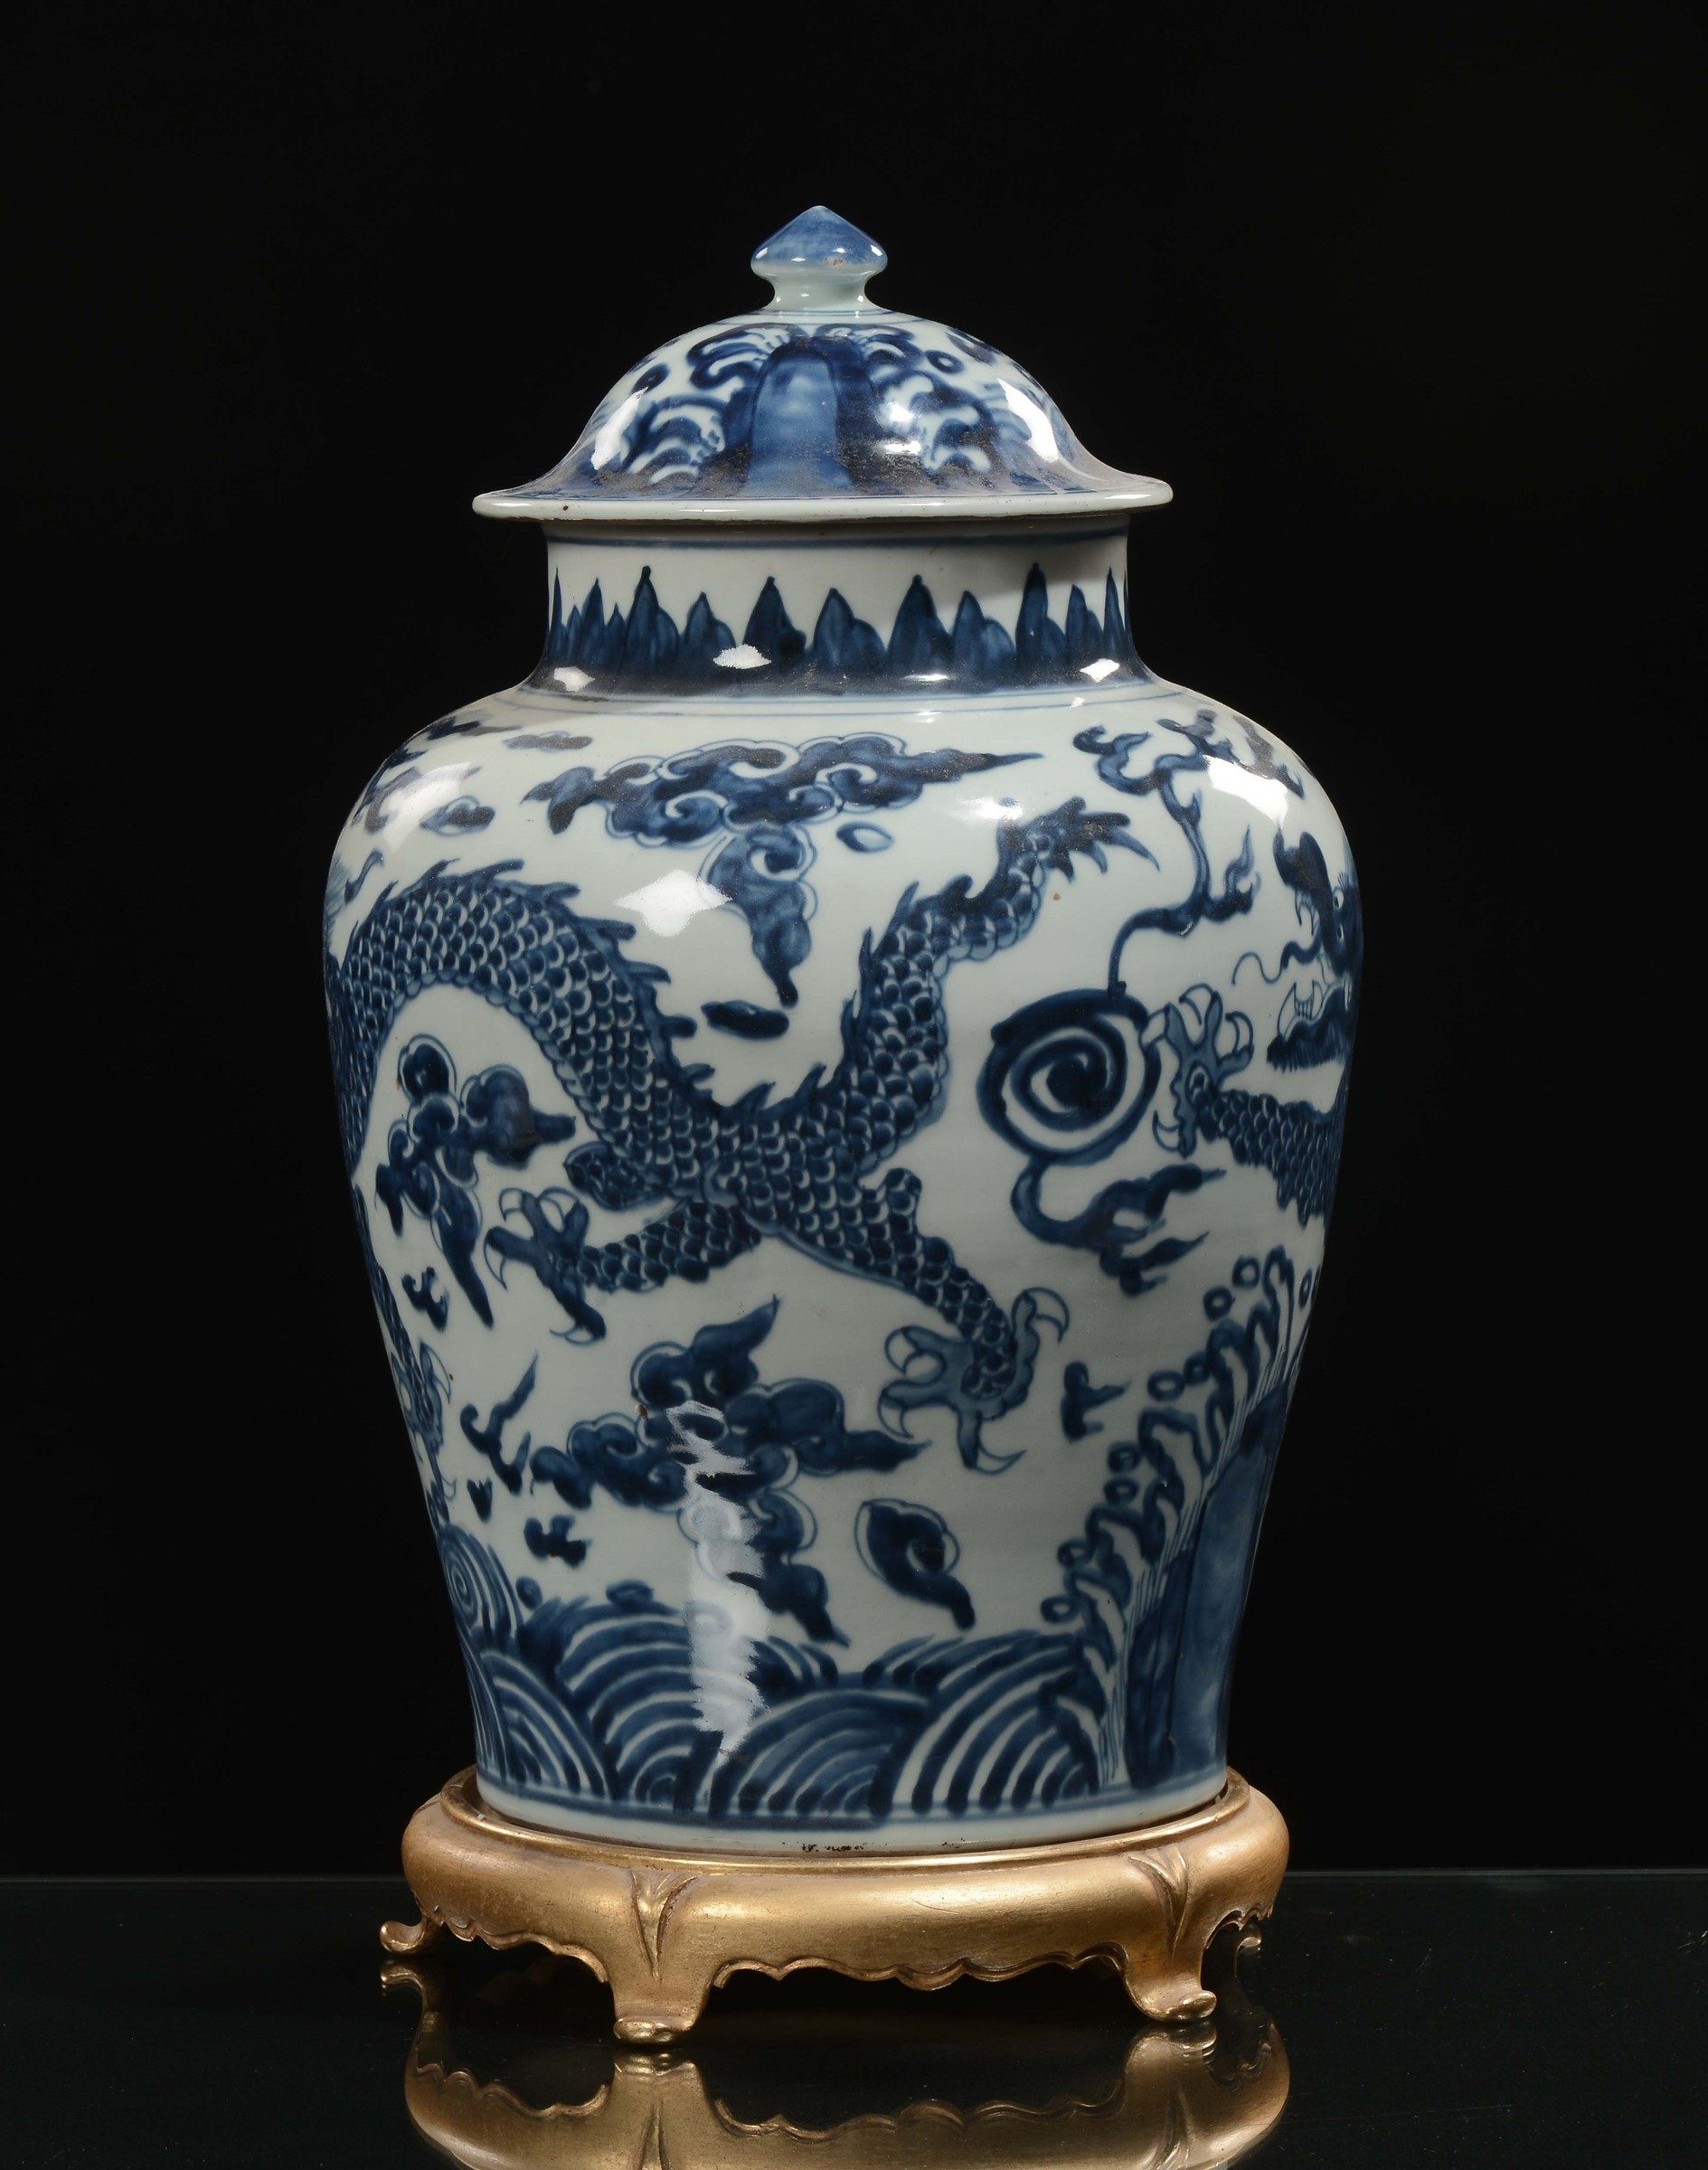 A white and blue porcelain vase with cover depicting